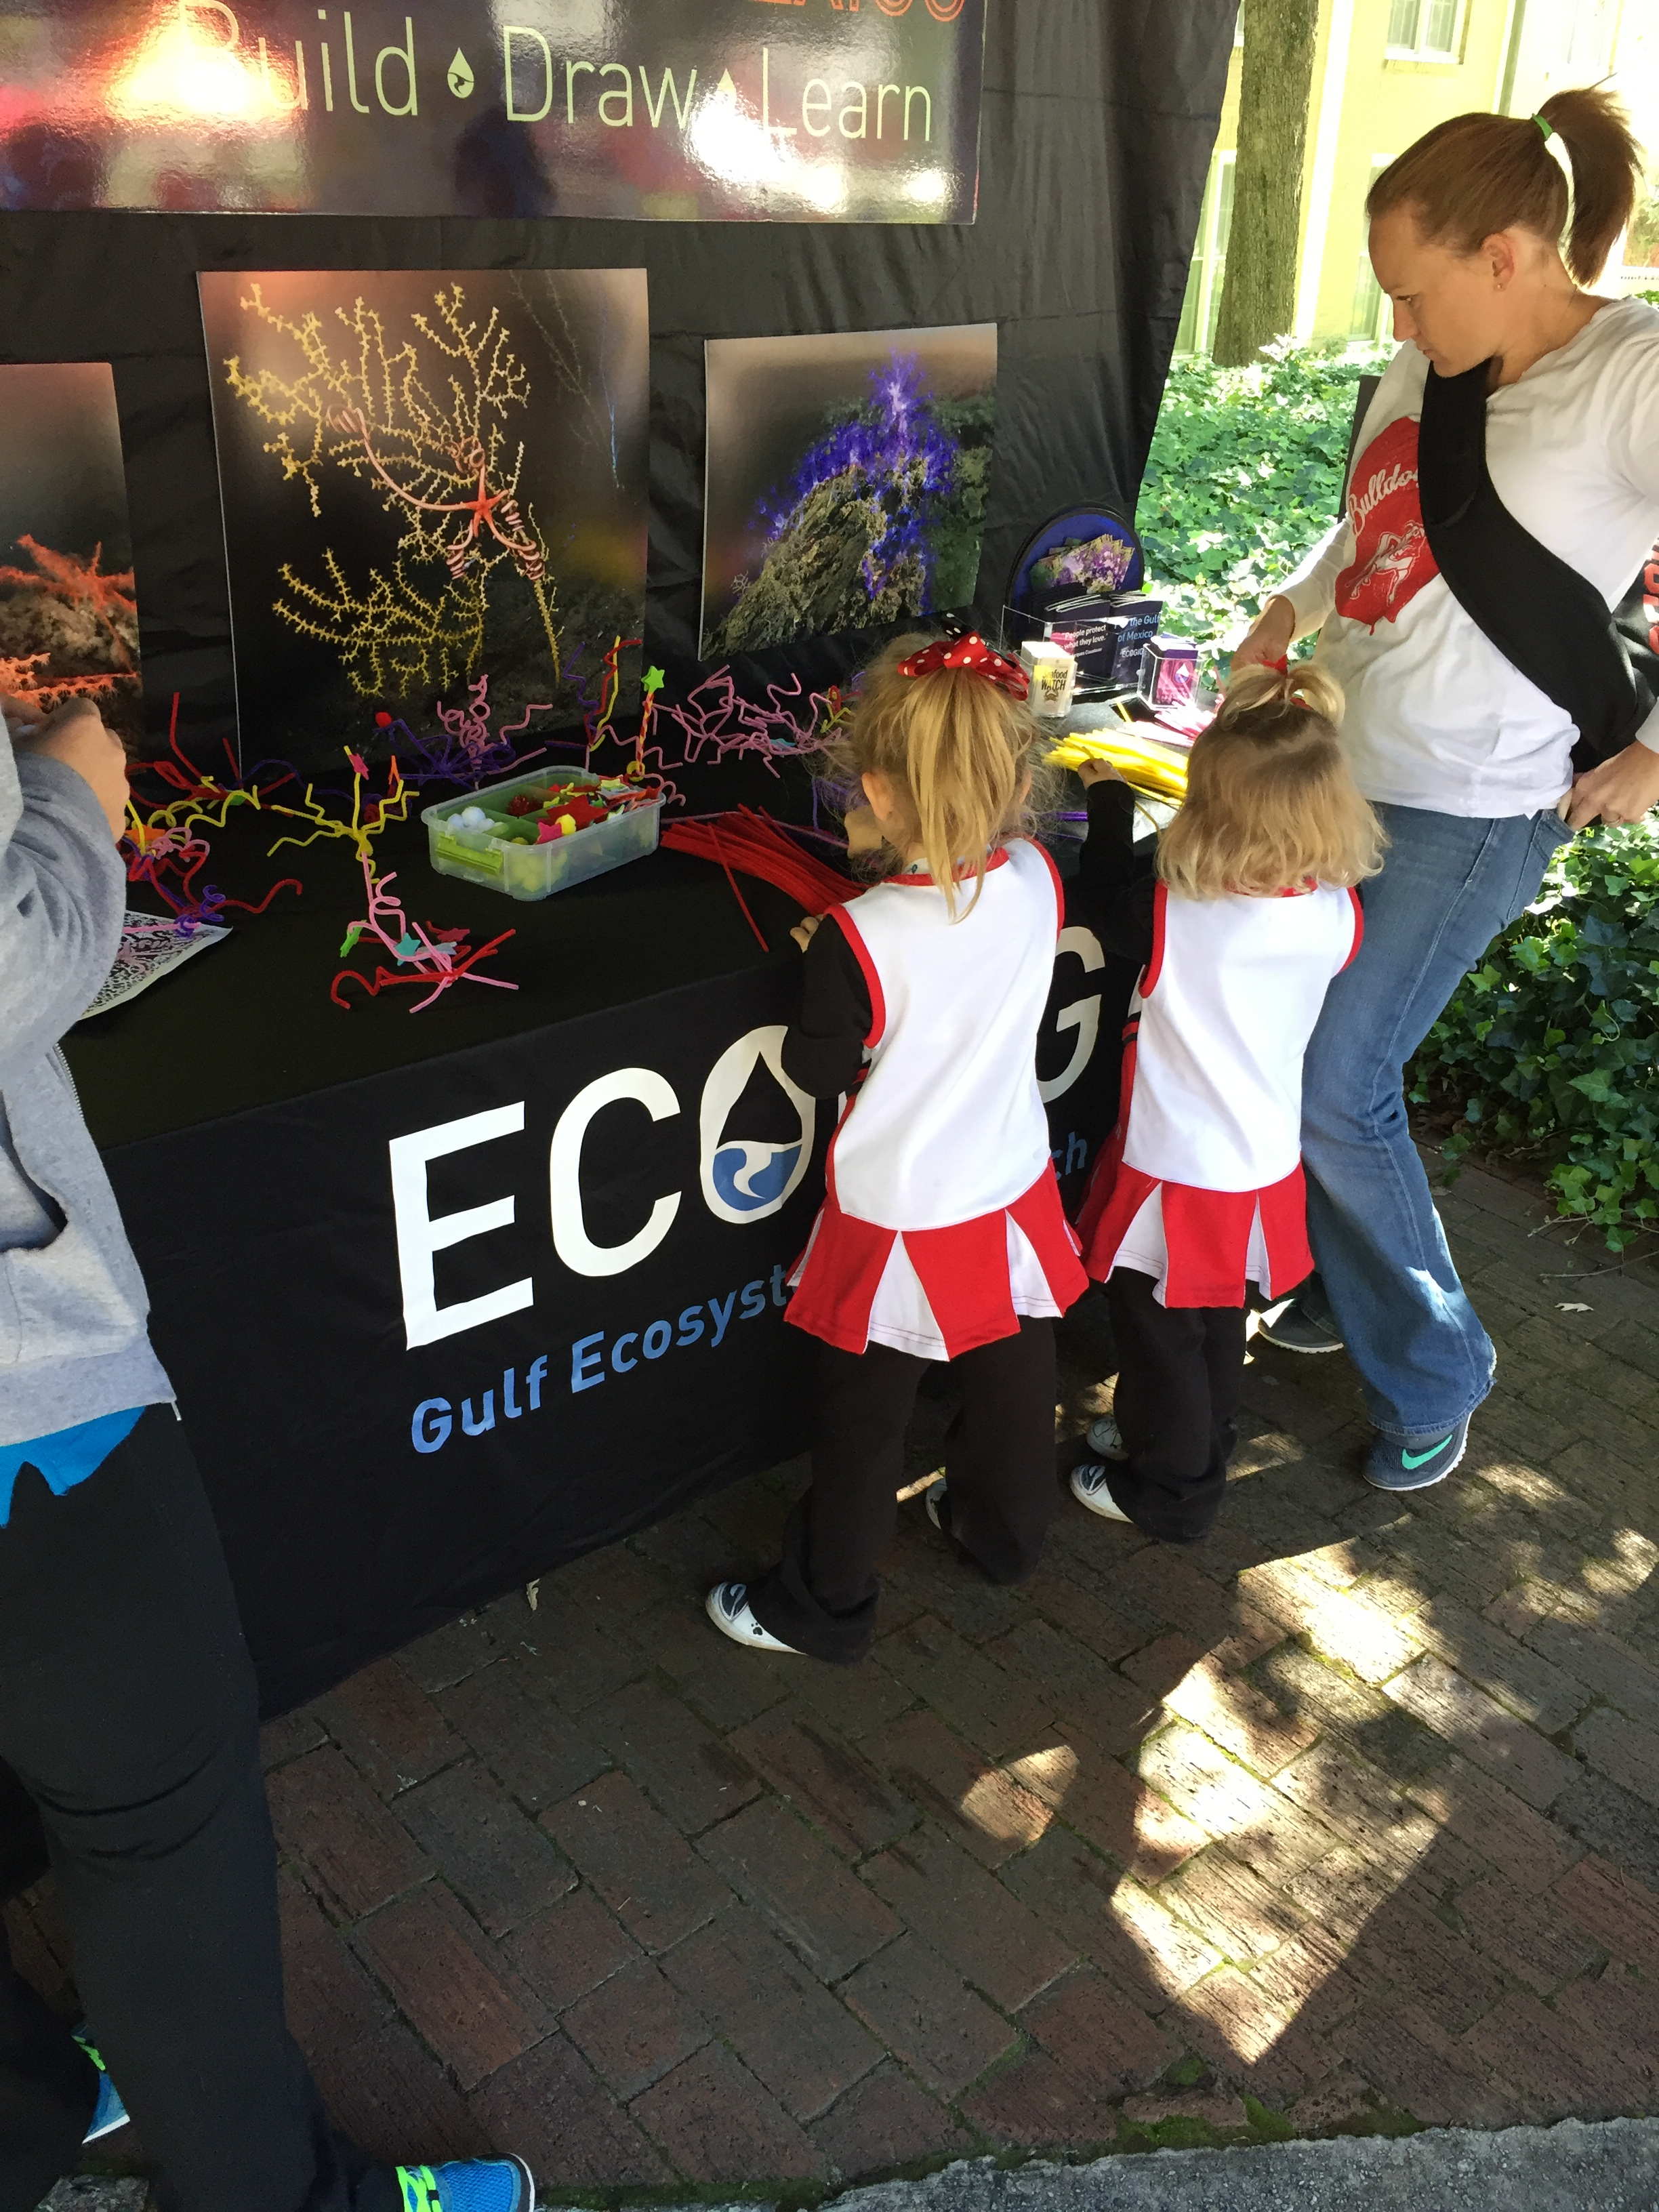 <div style='color:#000000;'><br /><br /><h2>UGA home football game 2015- Visitors check out the deep sea coral build, draw, learn station</h2>(C)&nbsp;ECOGIG</div>